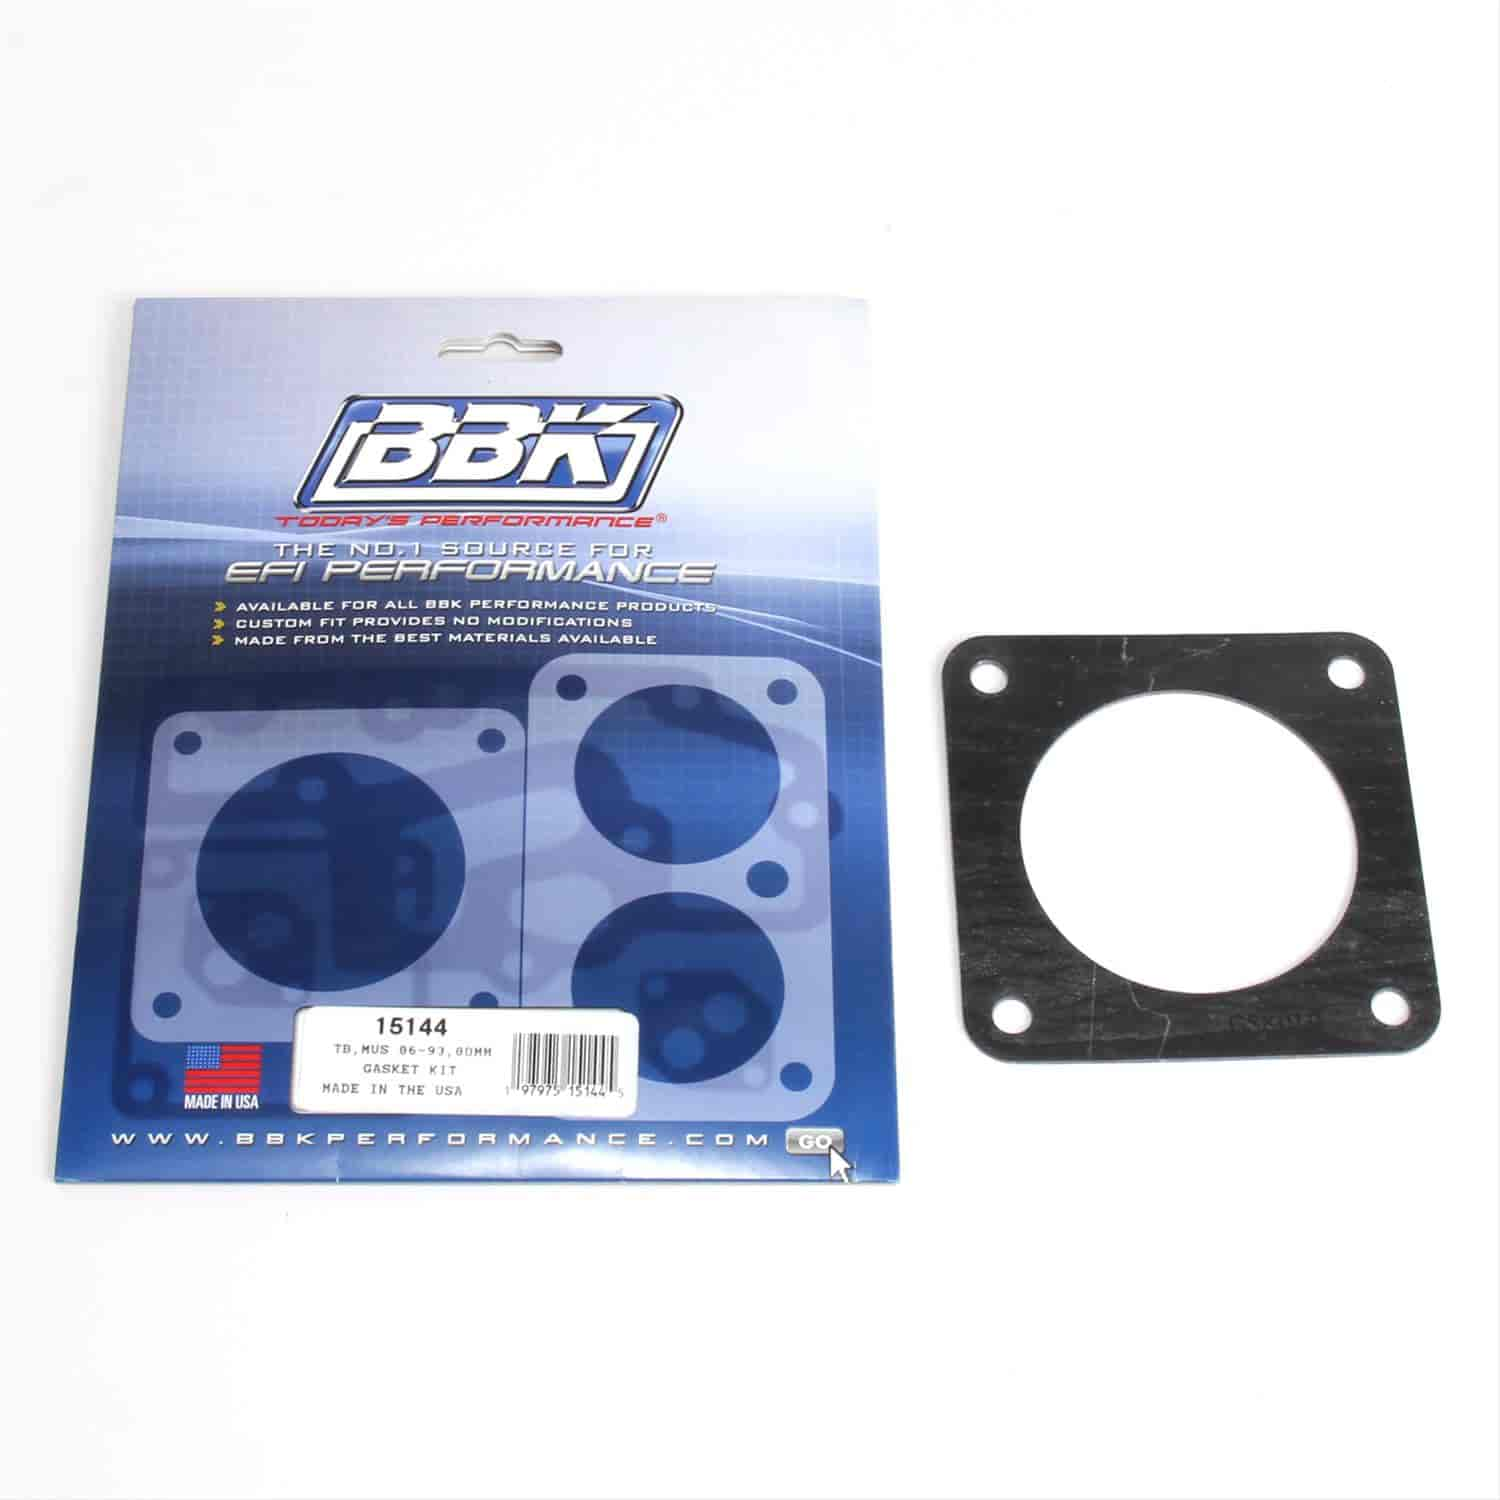 BBK Performance Parts 15144